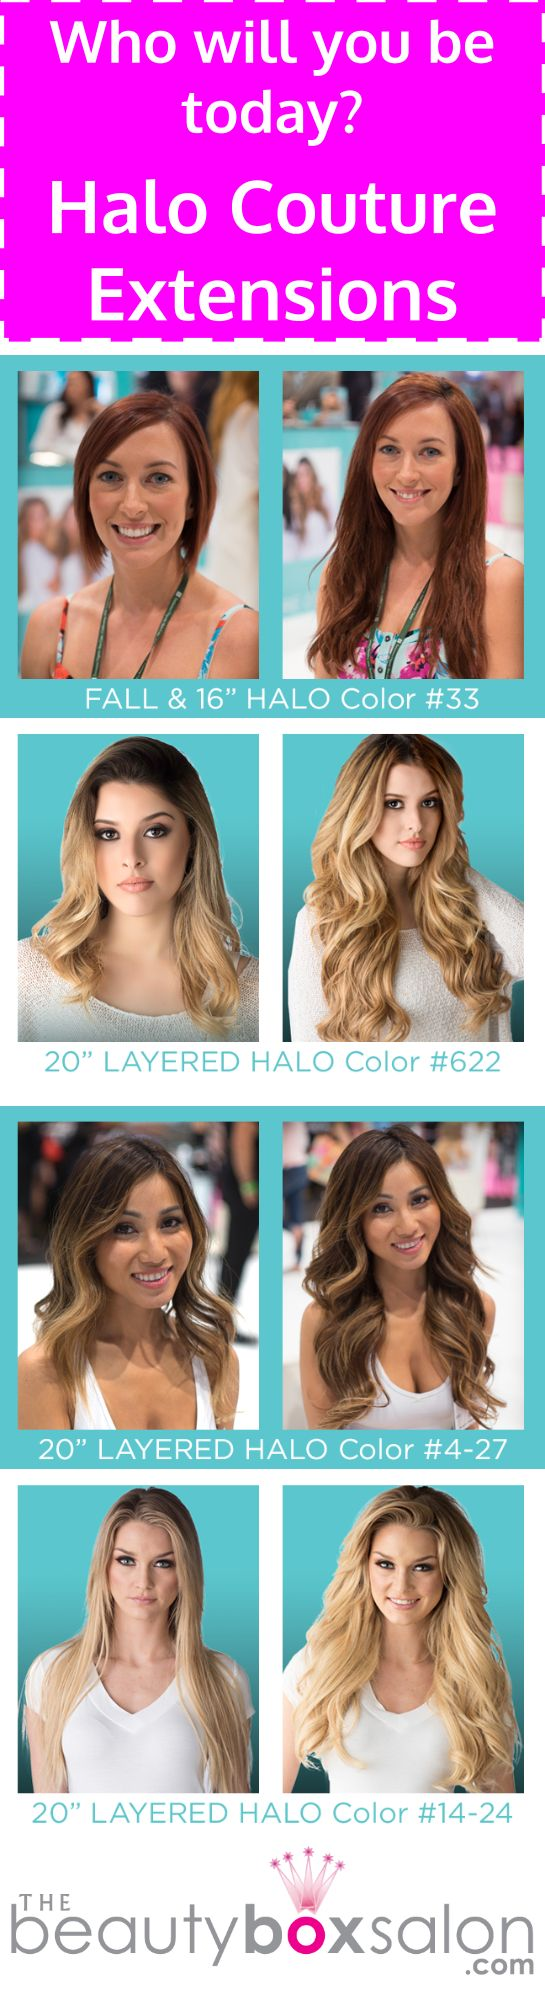 Thinking of getting Halo Hair Extensions? We have these babies in stock! Dallas Halo Hair Extension Salon. #halohairextensions #dallashair #thebeautyboxsalon